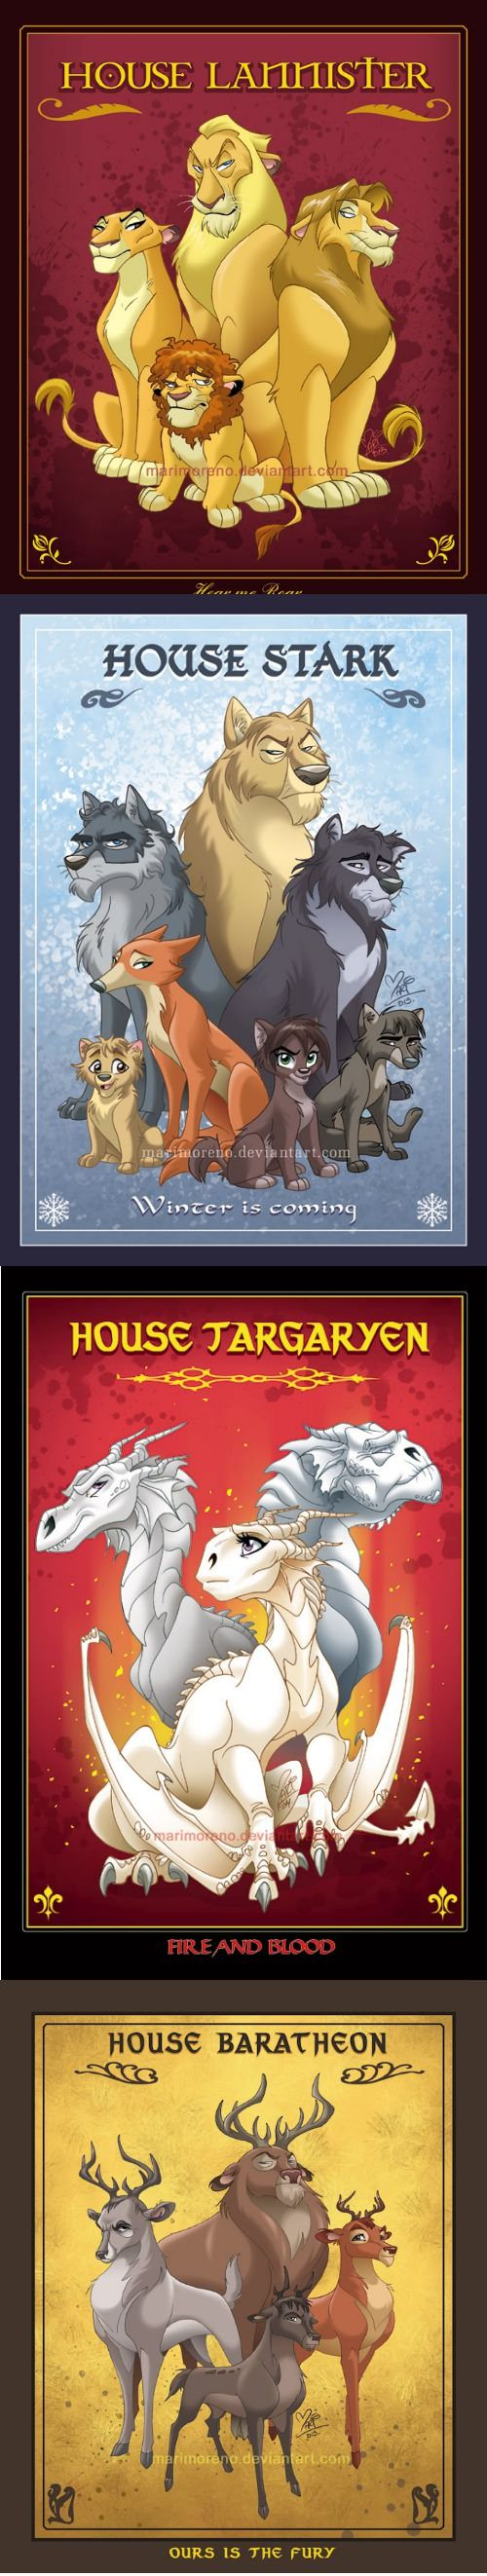 Disney Game of Thrones - How is it they look EXACTLY like who they represent.  Great artwork.